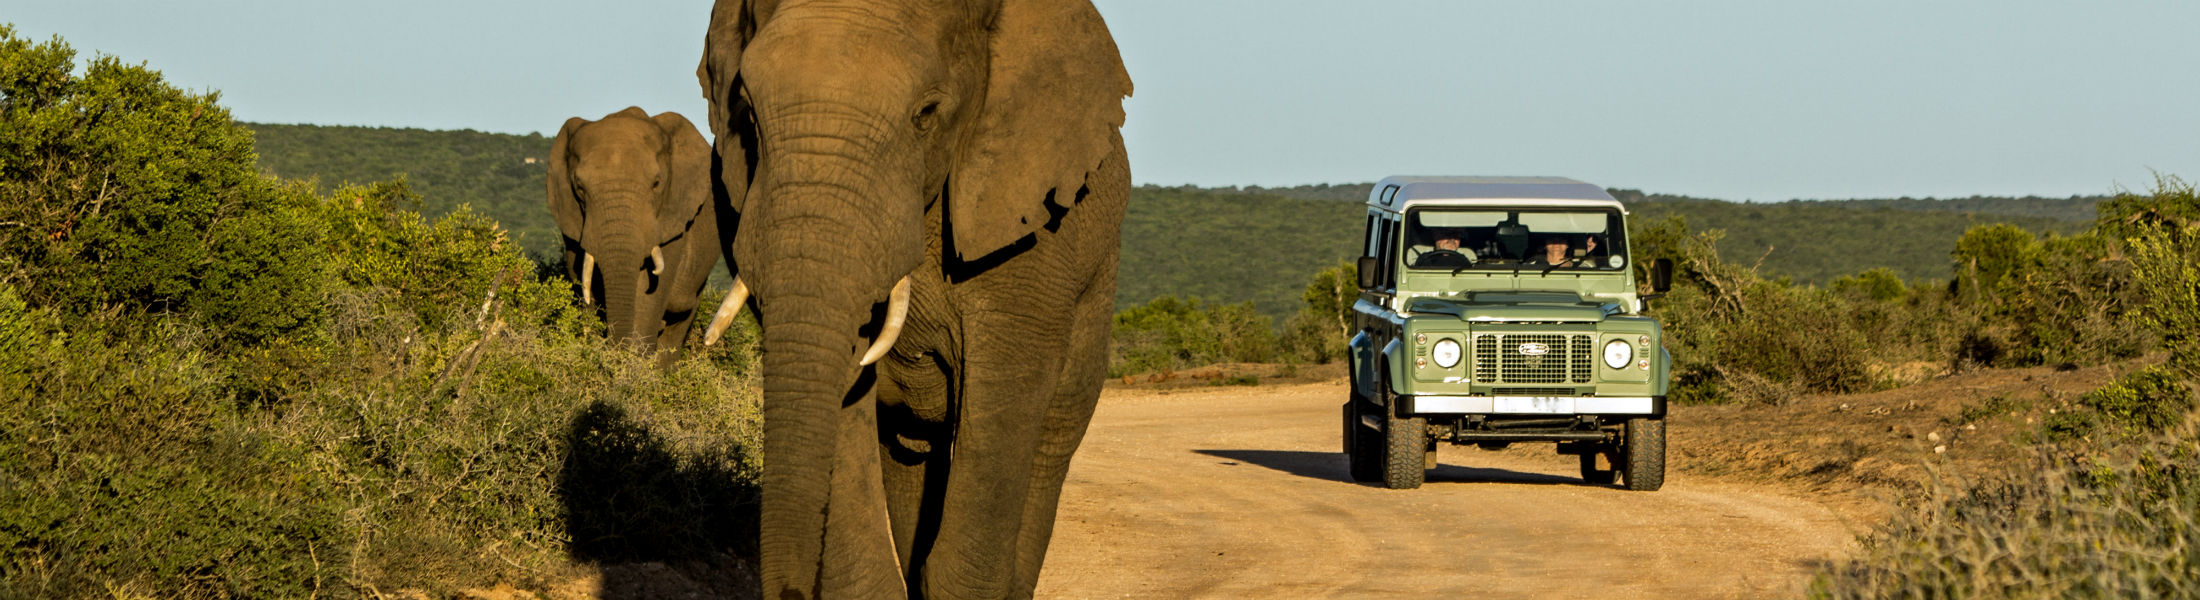 Safari truck with elephants in foreground